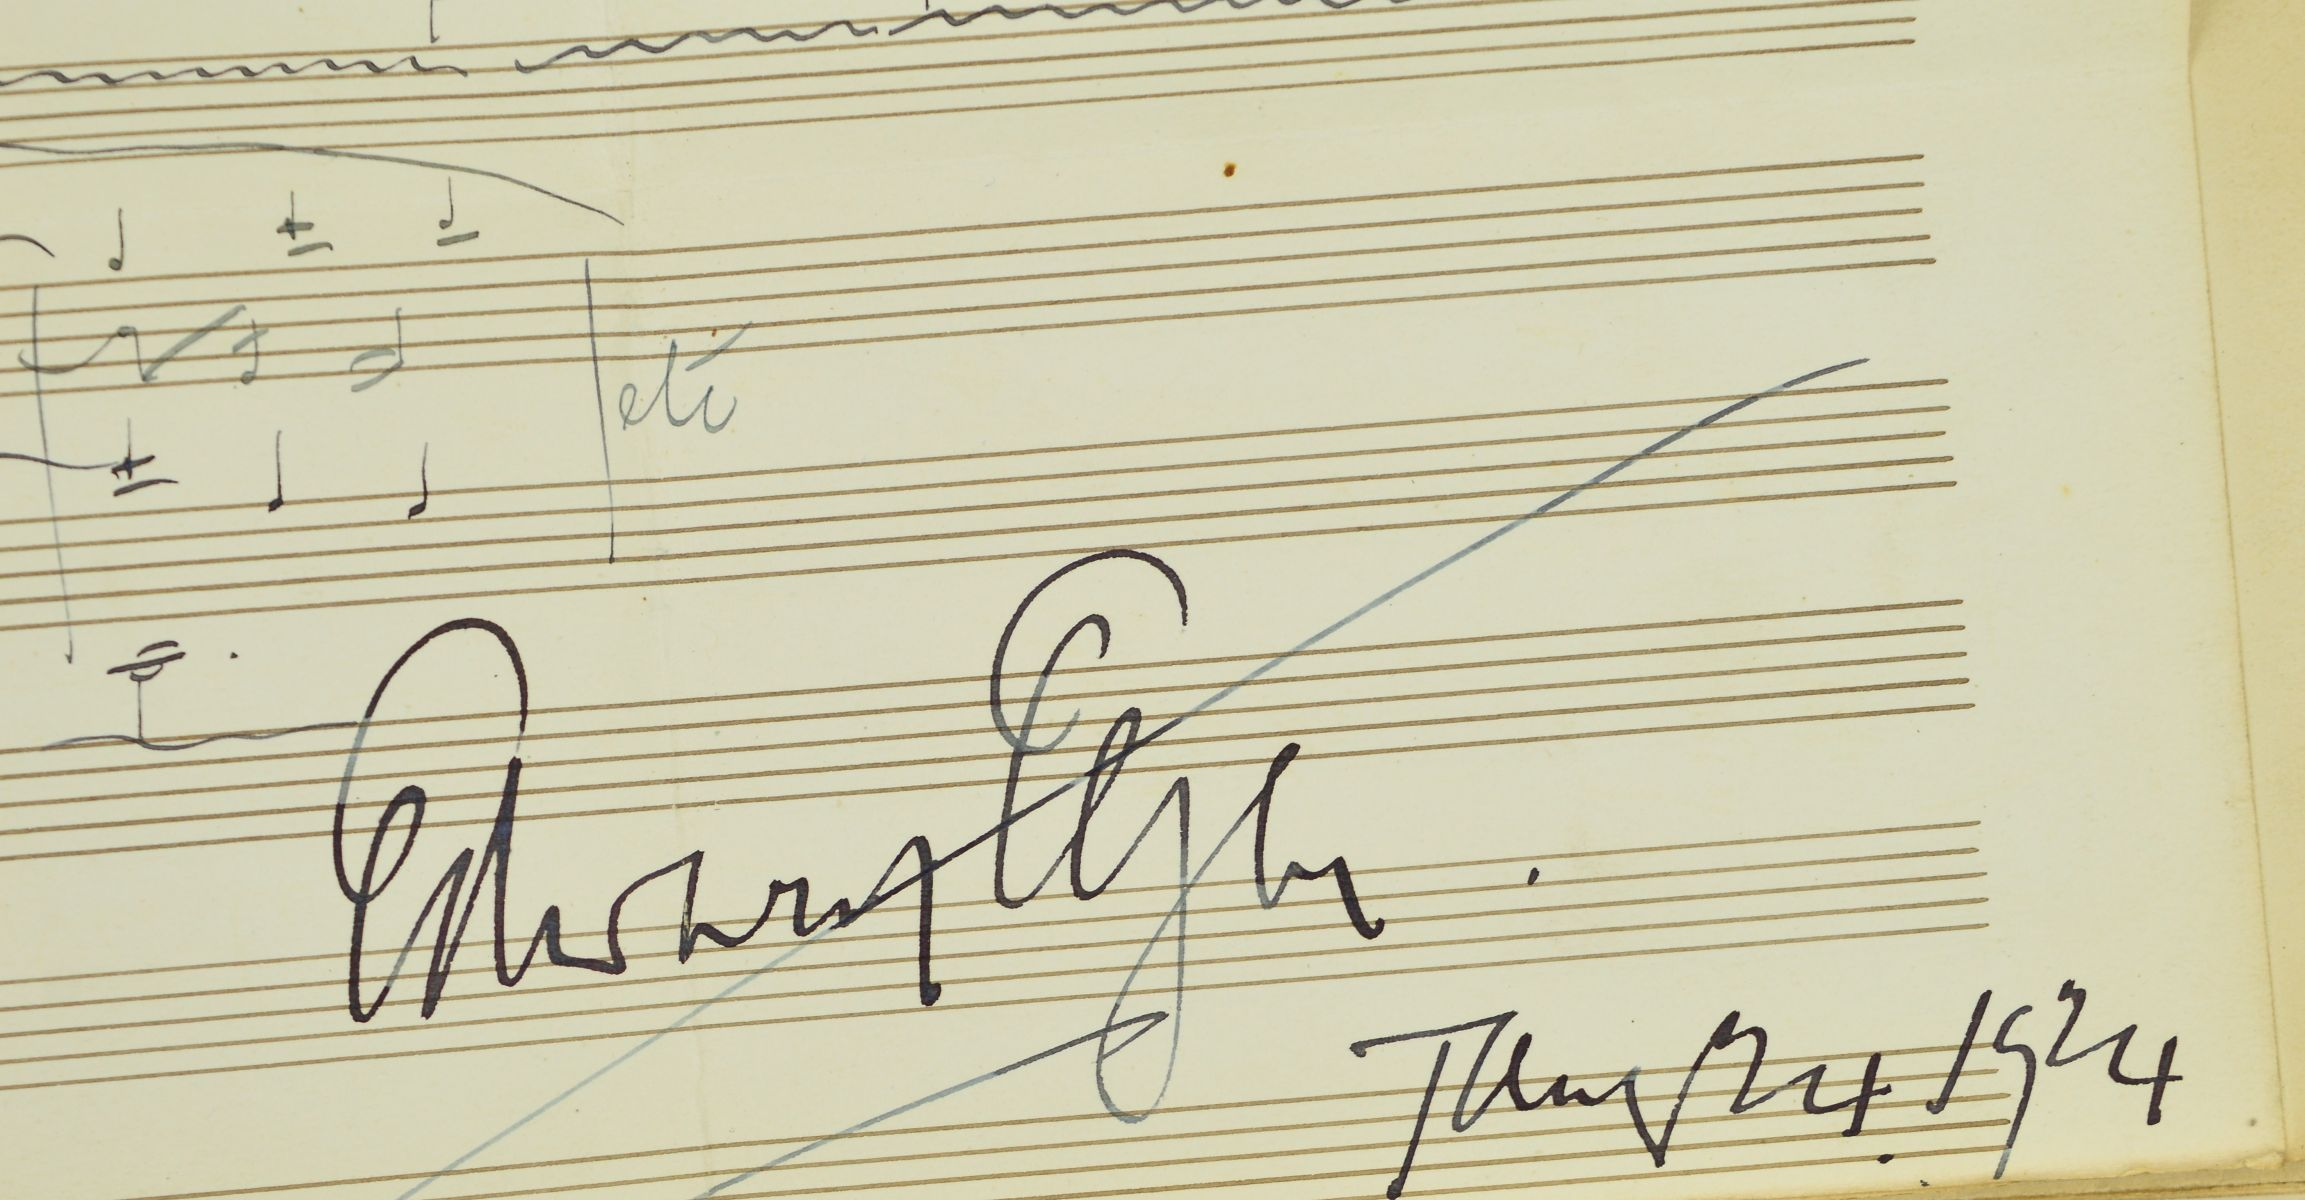 AN AUTOGRAPH COLLECTED IN AROUND 1923 BY MR HERBERT TABB AND MRS LYDIA TABB WORKING ON BEHALF OF - Image 3 of 7